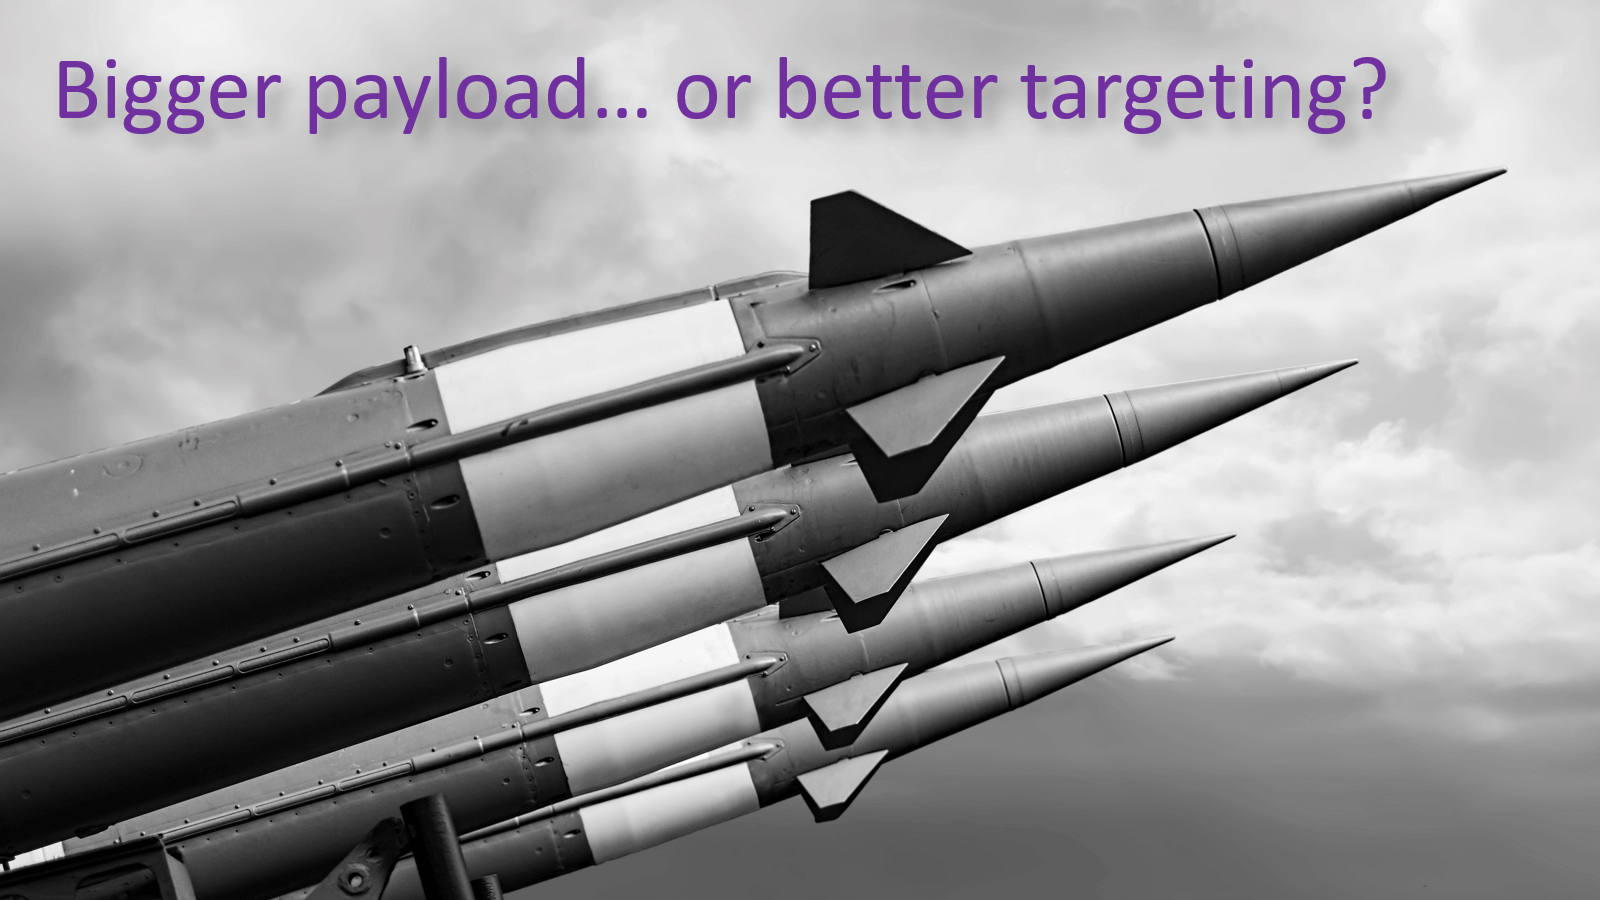 Bigger-payload-vs-better-targeting